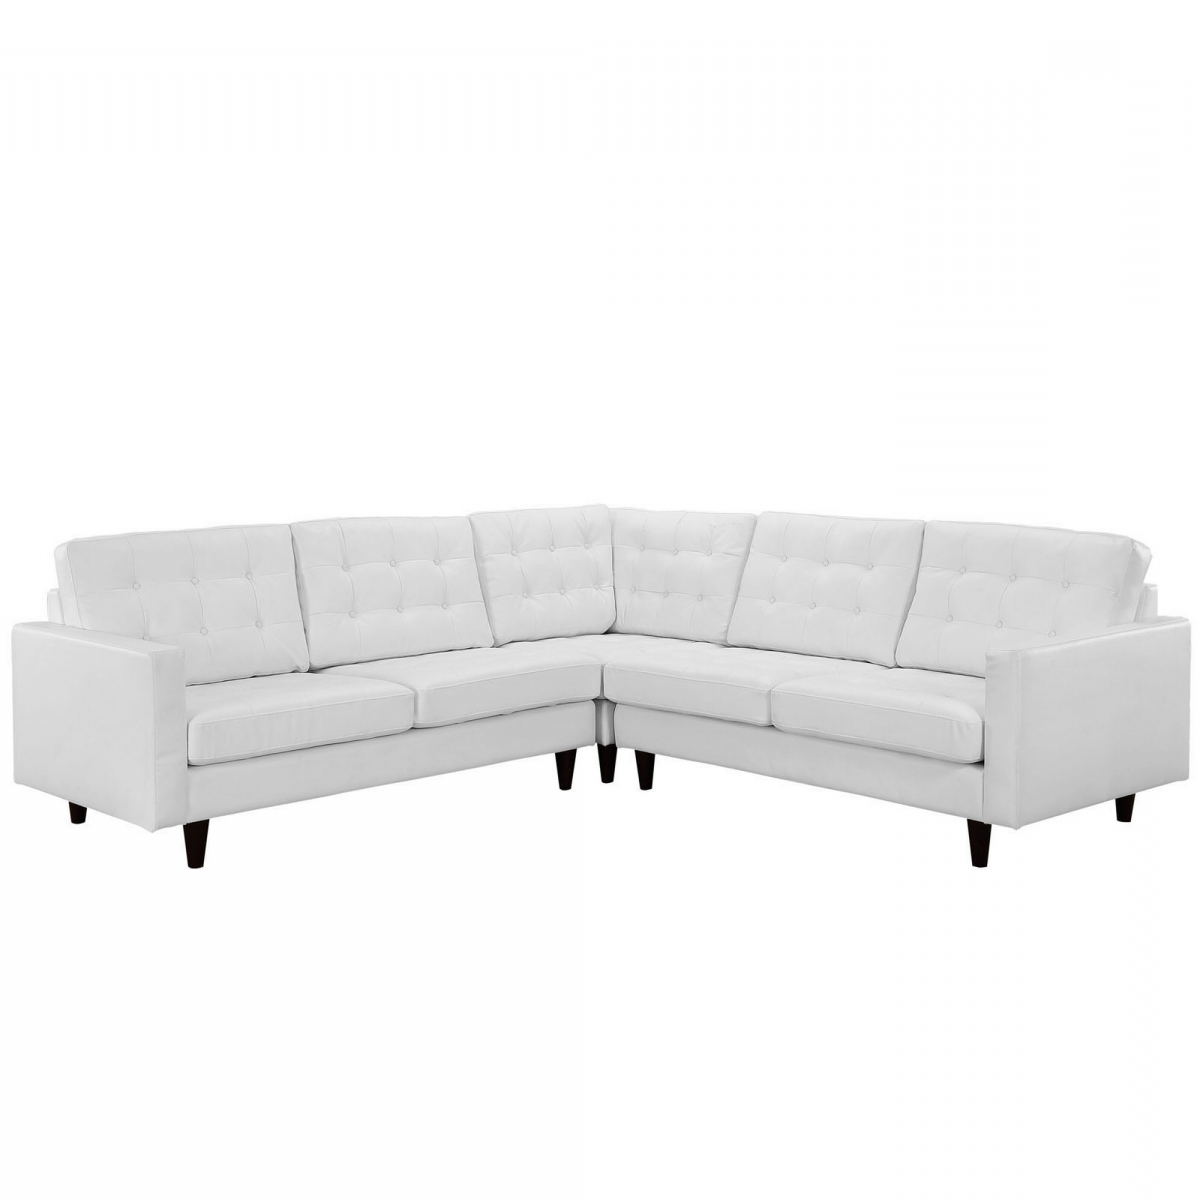 3Pc Bonded Leather Upholstered Wooden Sectional Sofas Brown Regarding Well Liked Ellen 3 Piece Leather Sectional Sofa Set – White (View 12 of 25)